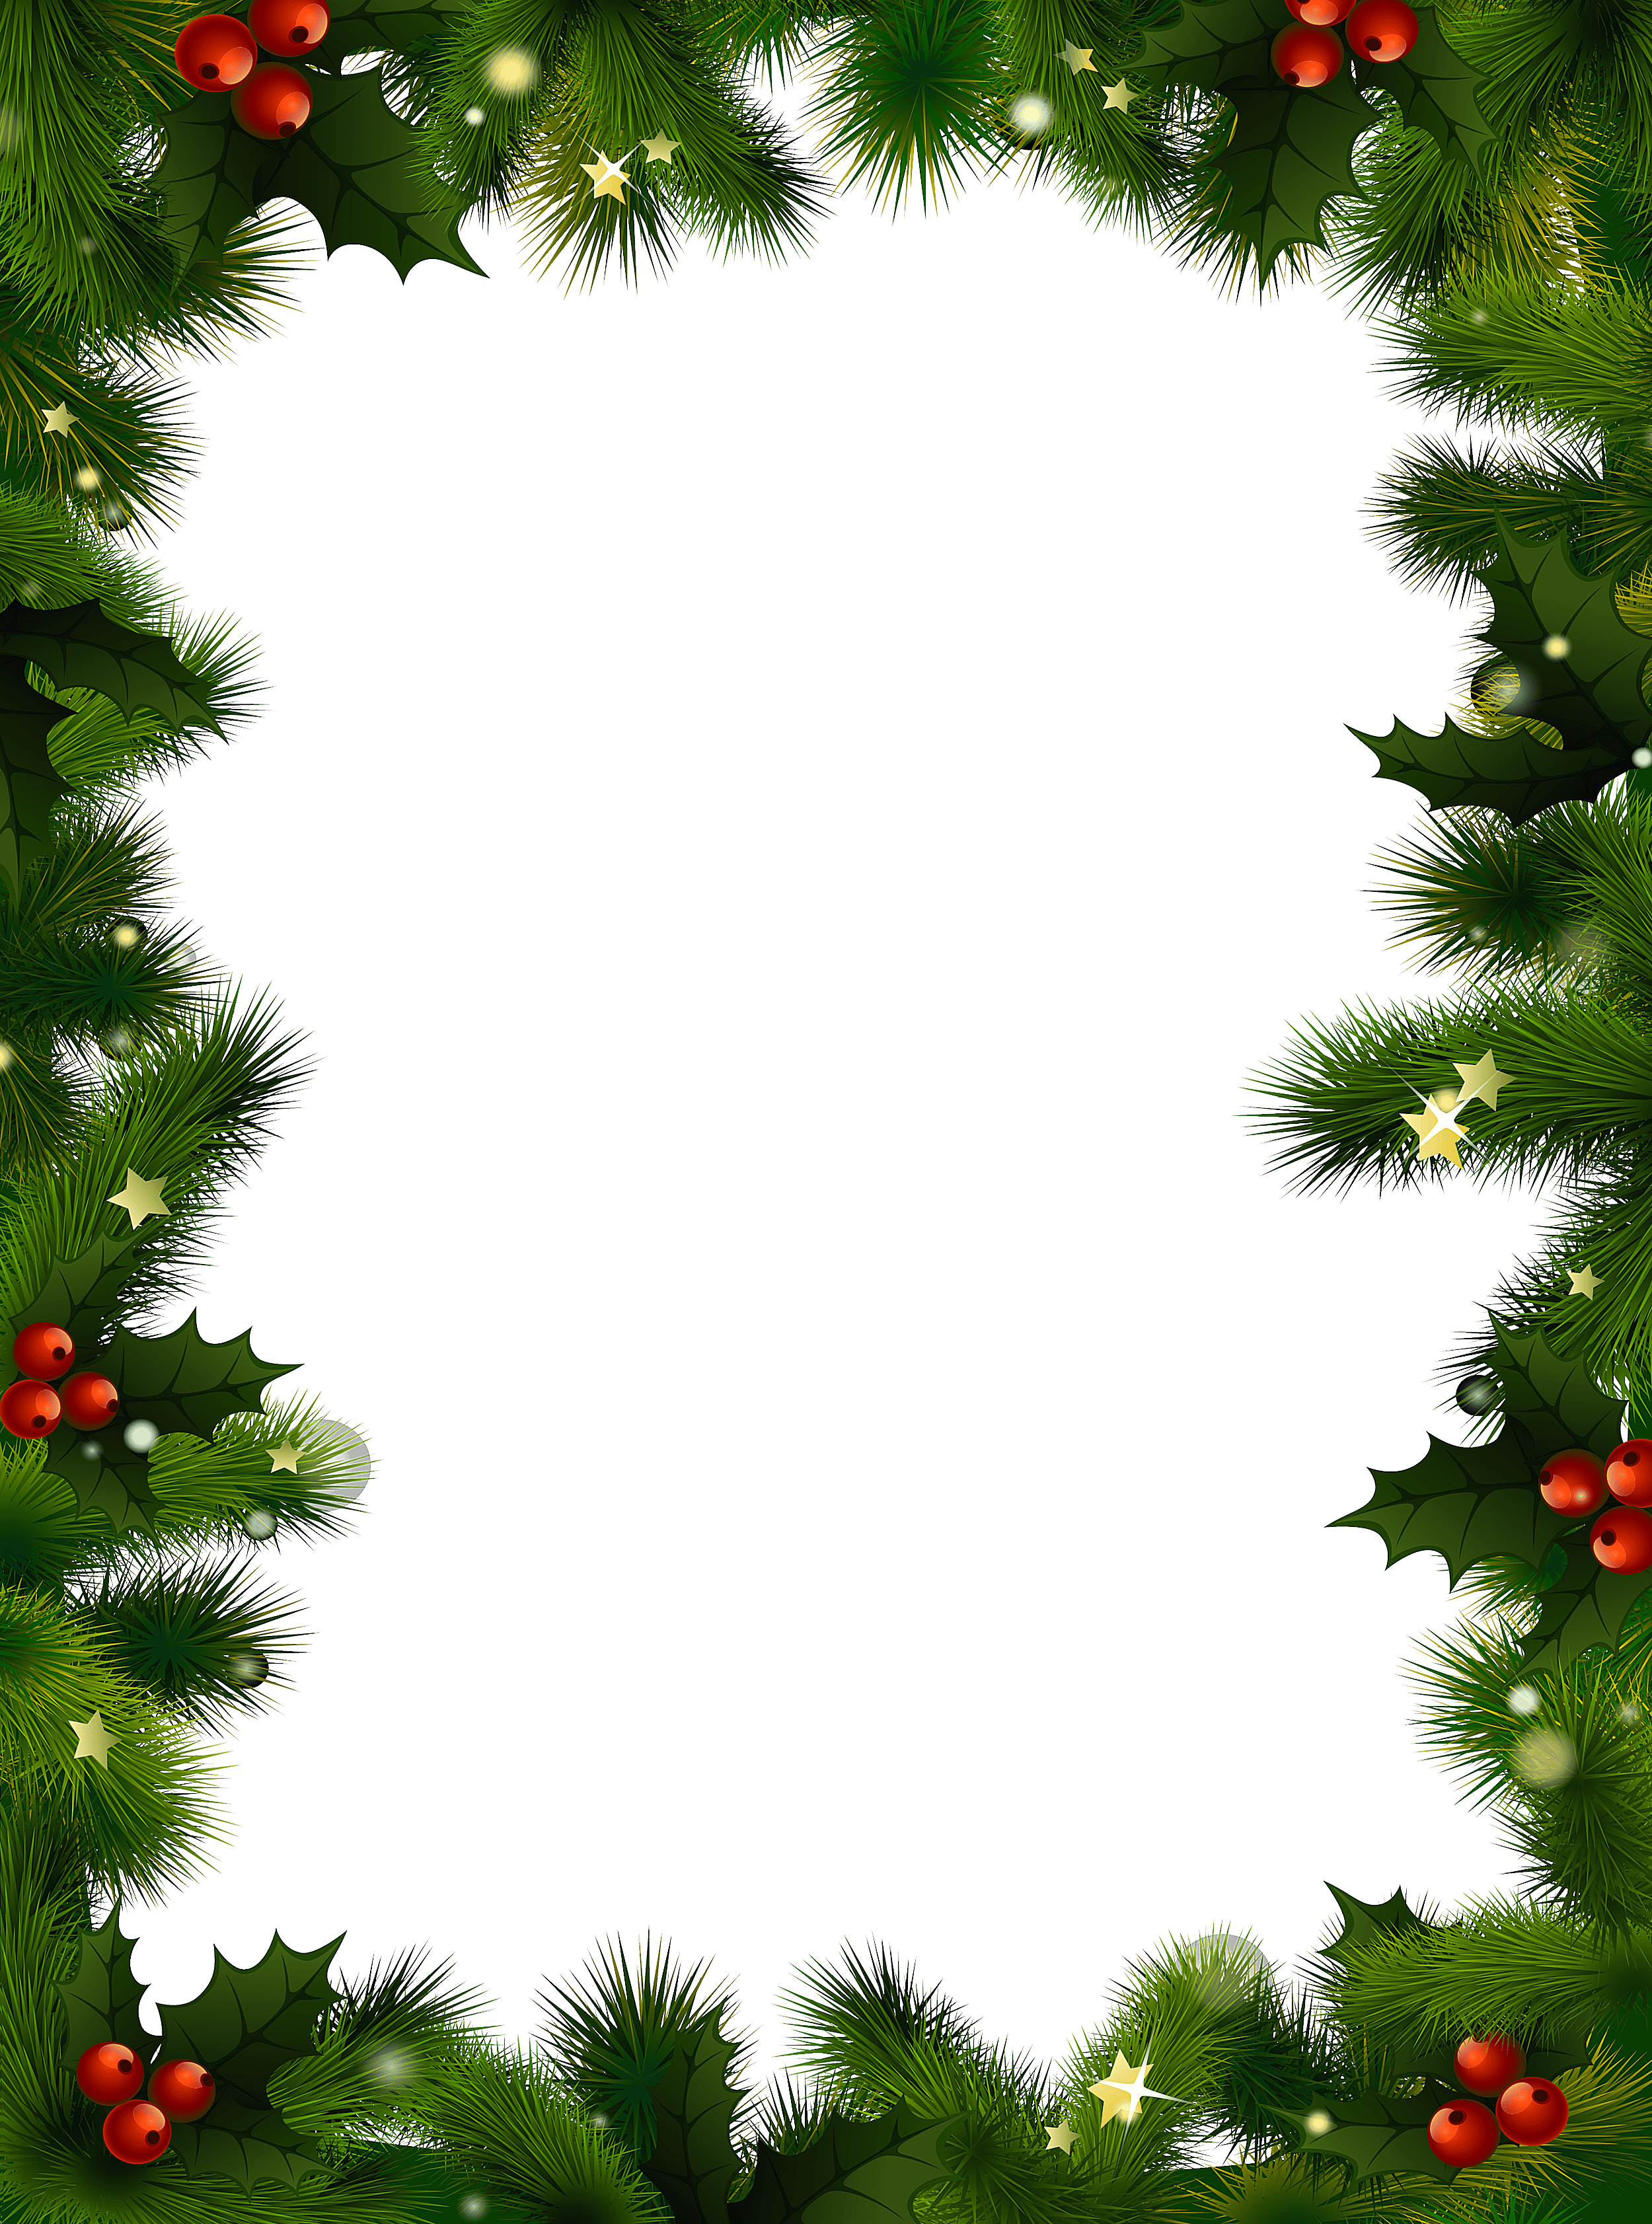 Free christmas photo frames and borders png. Frame pictures fast lunchrock